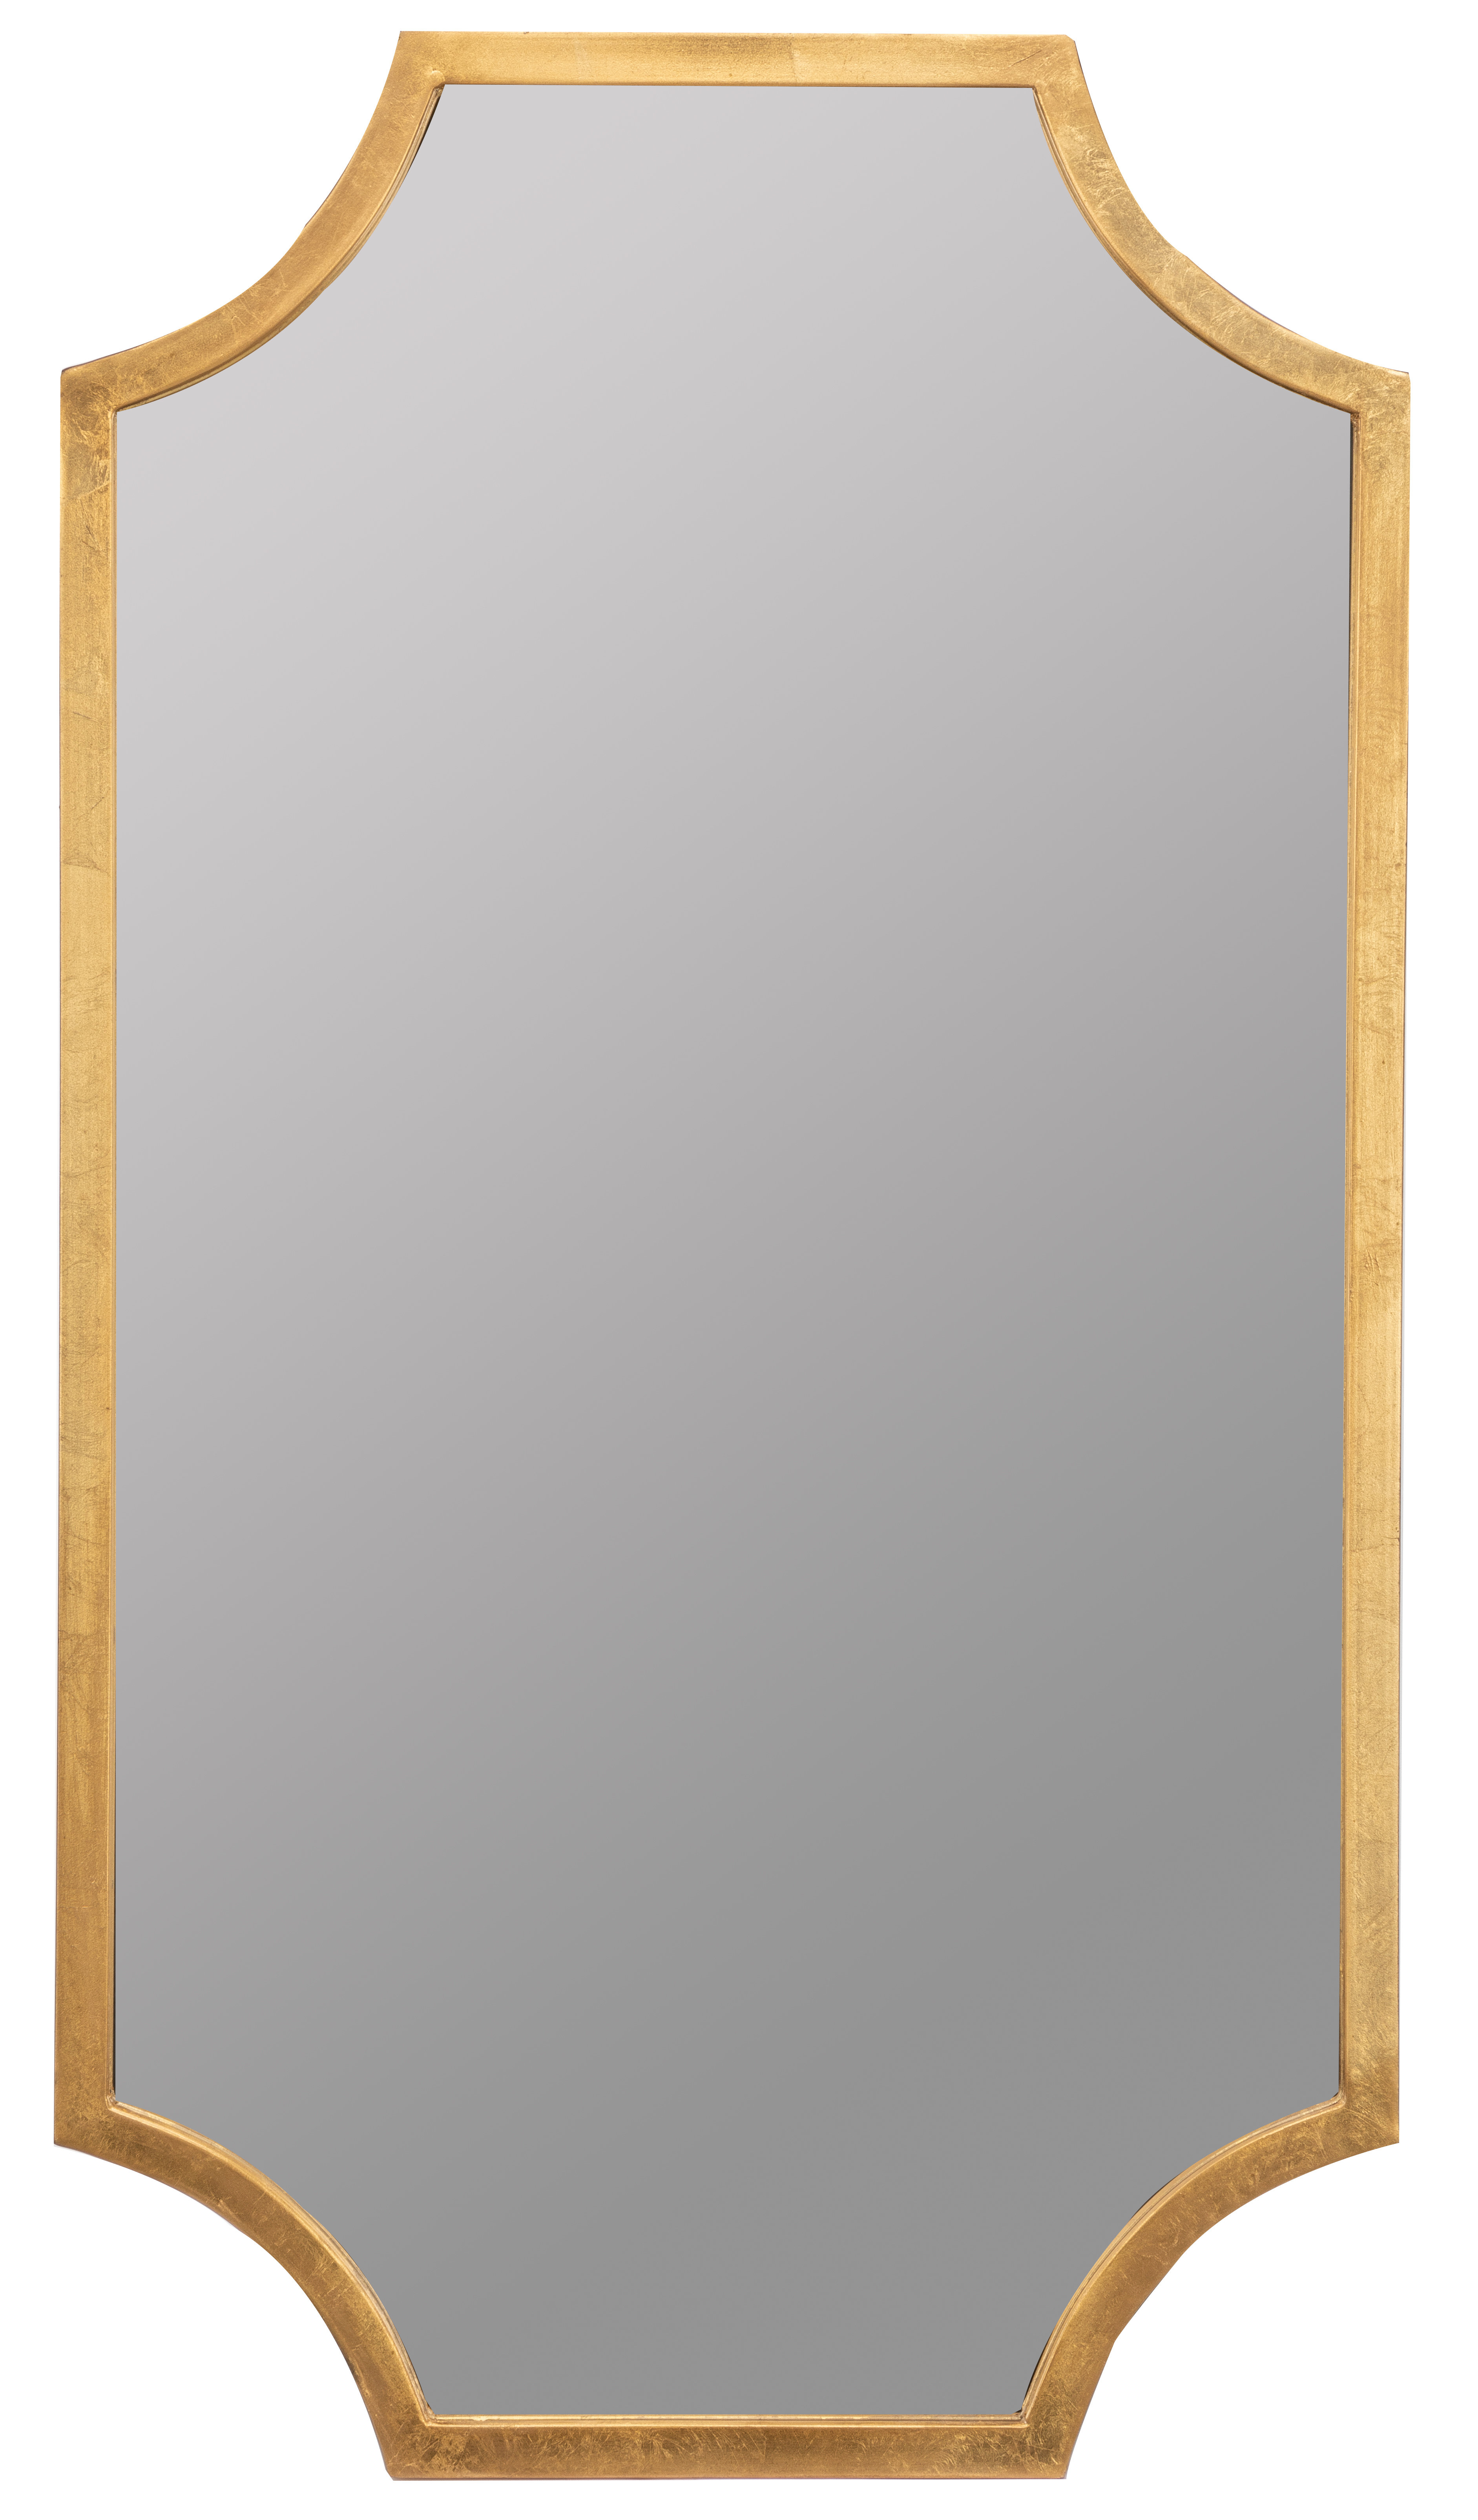 Brought Accent Mirror For Guidinha Modern & Contemporary Accent Mirrors (View 14 of 20)